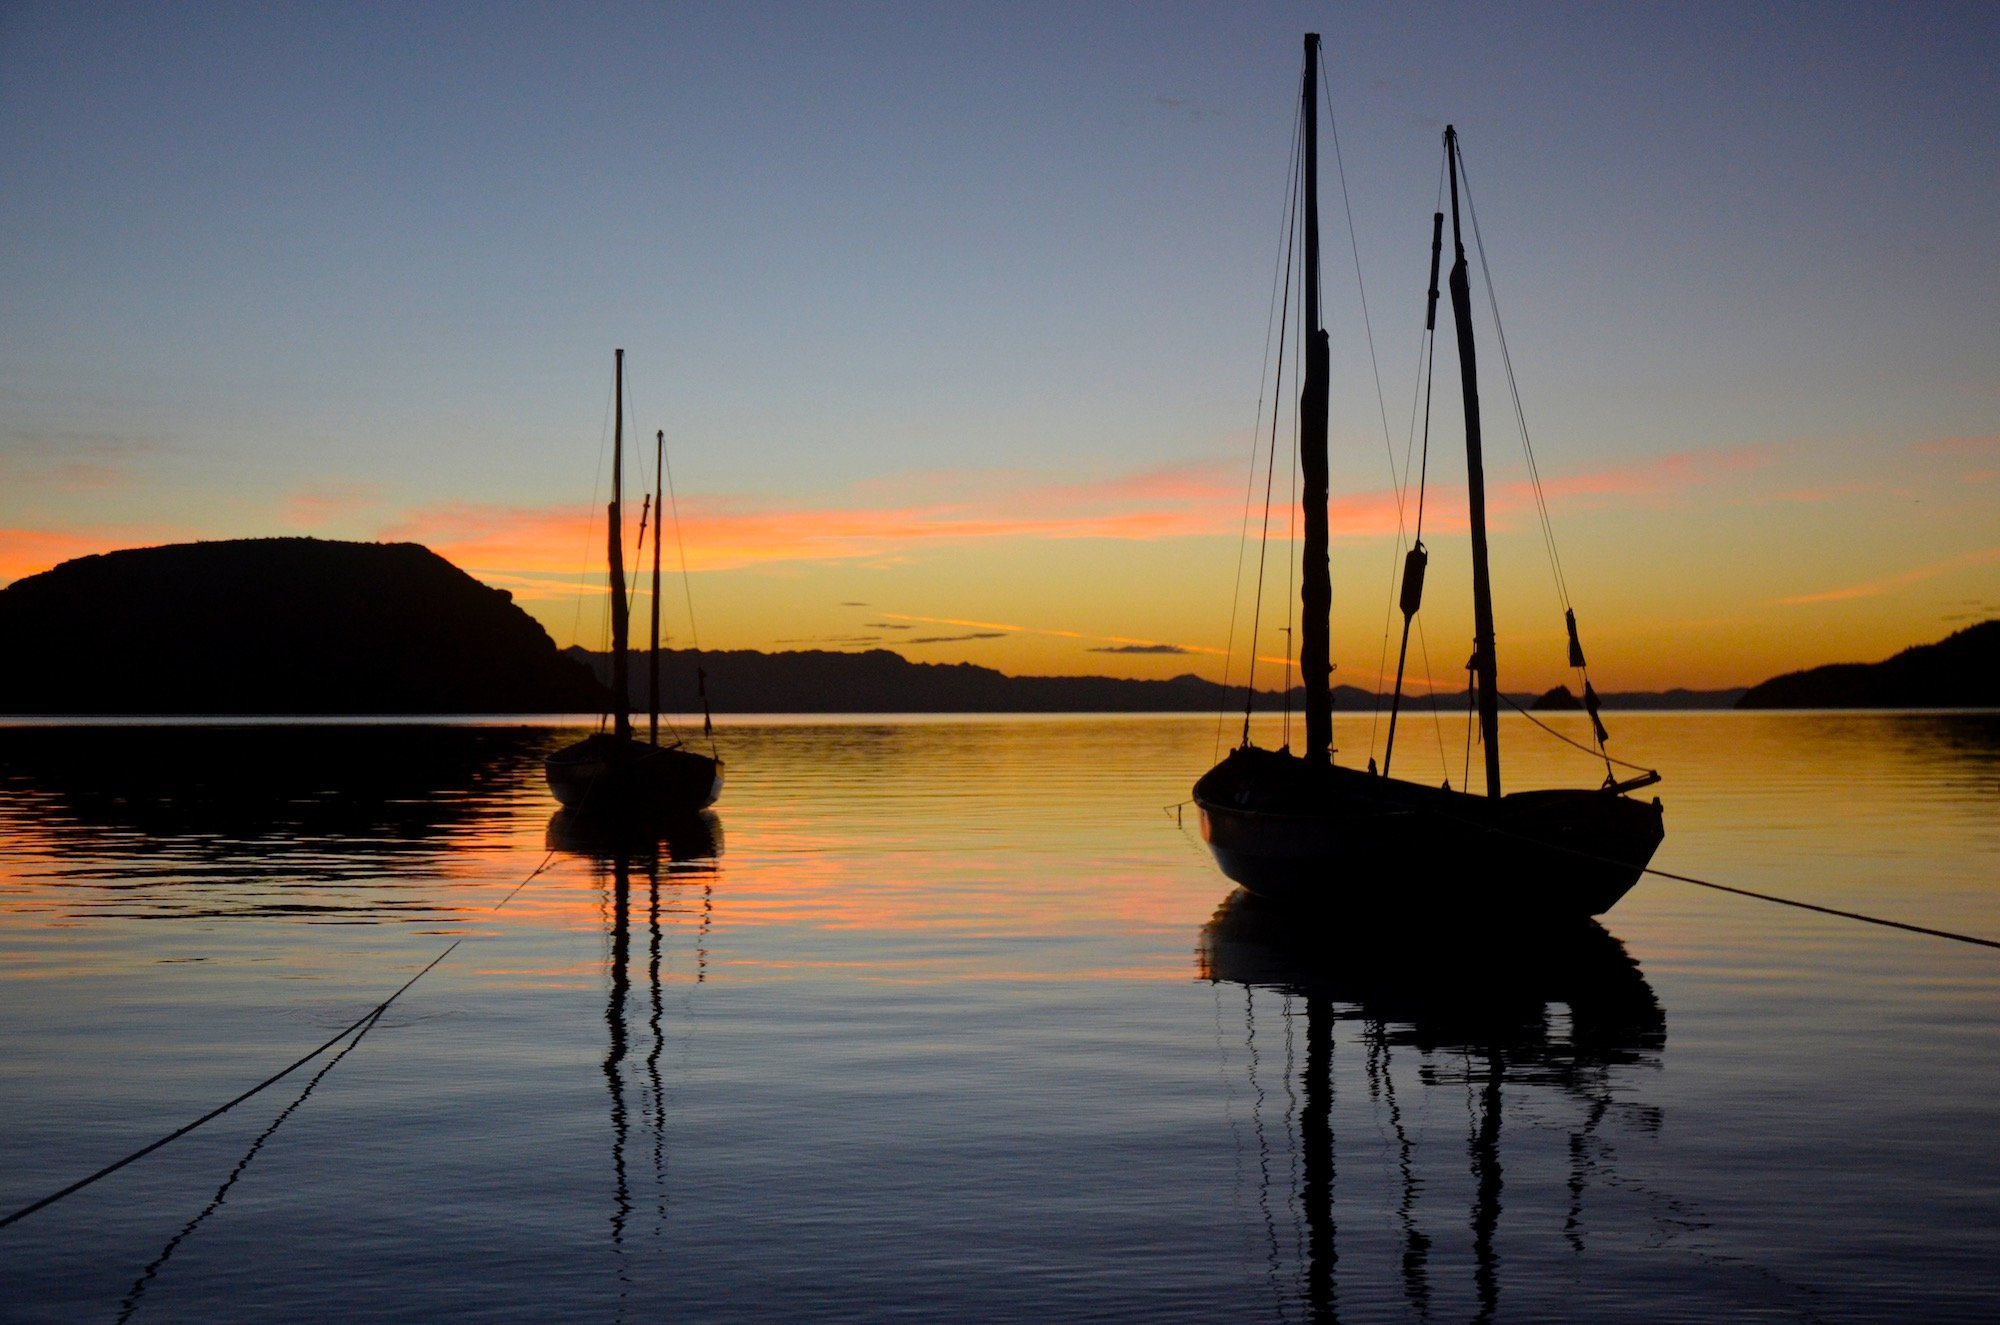 Two sailboats at sunset in Baja California